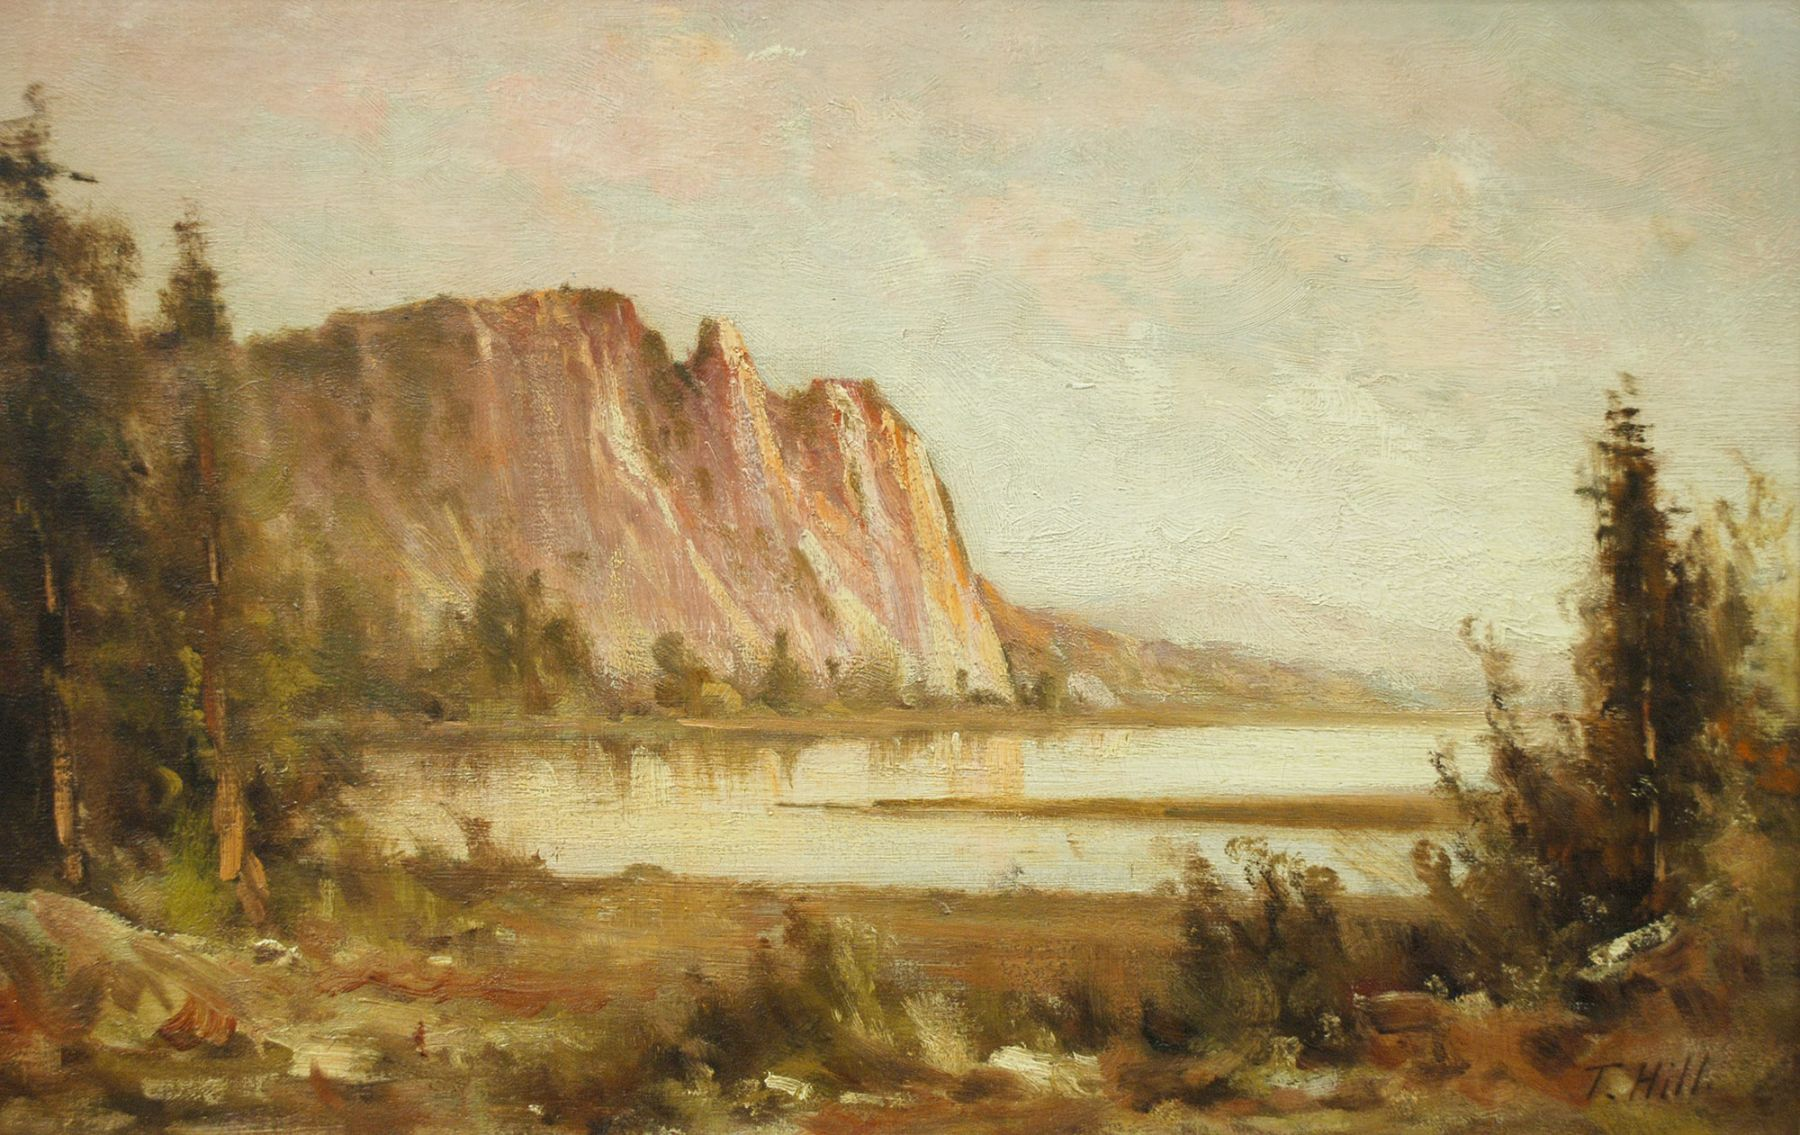 THOMAS HILL (1829-1908), Lake View at Dawn, c. 1880s